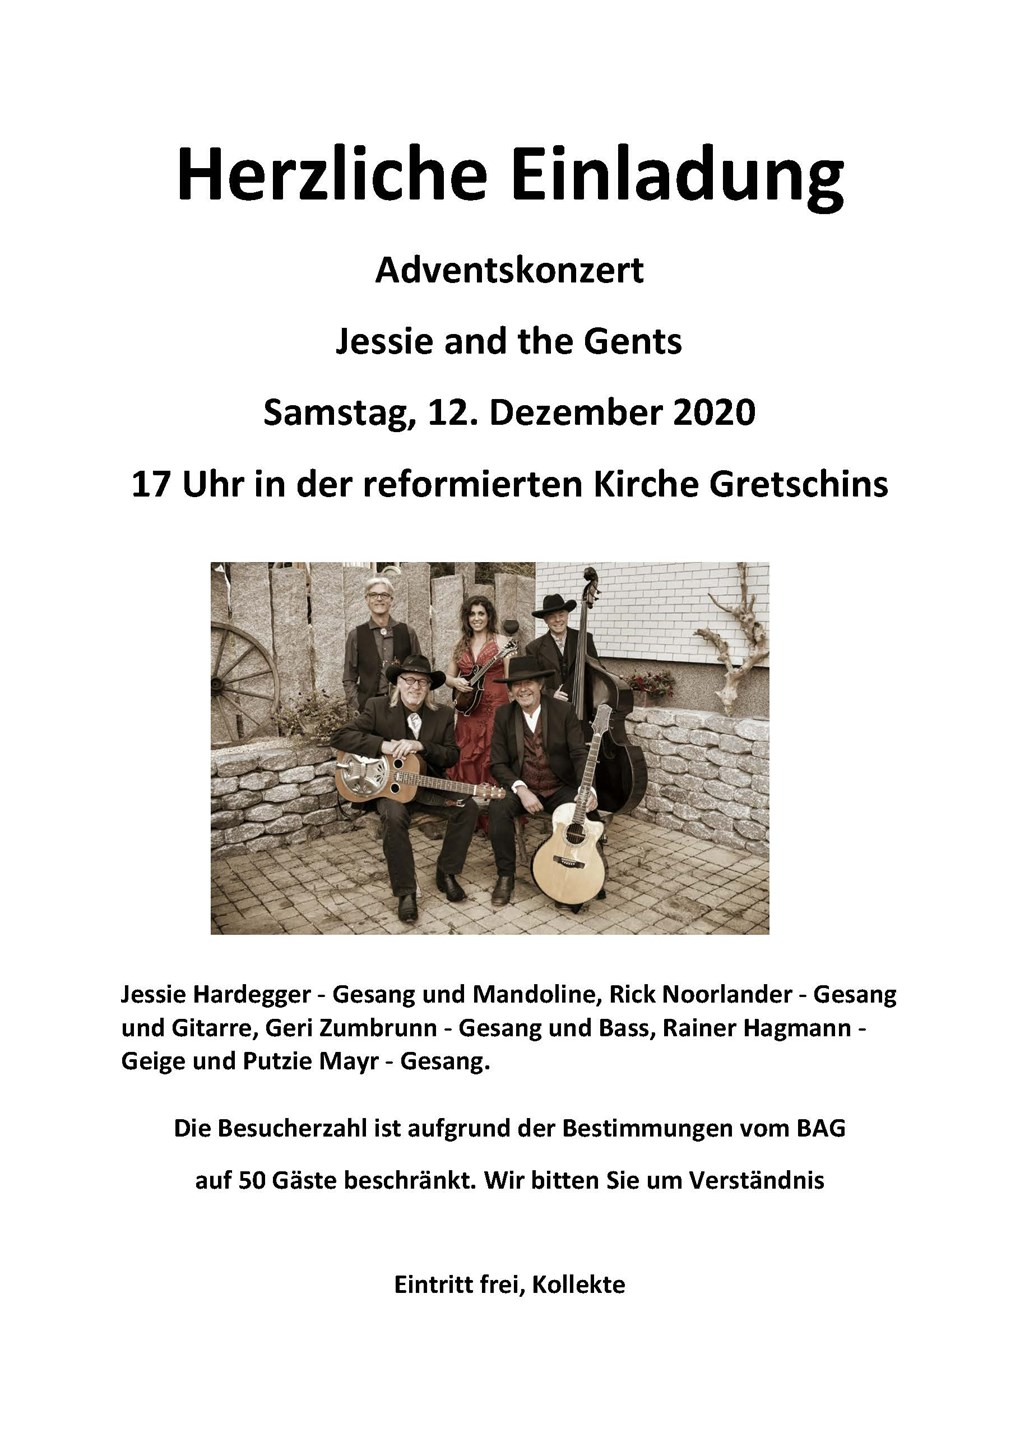 Adventskonzert JESSIE AND THE GENTS